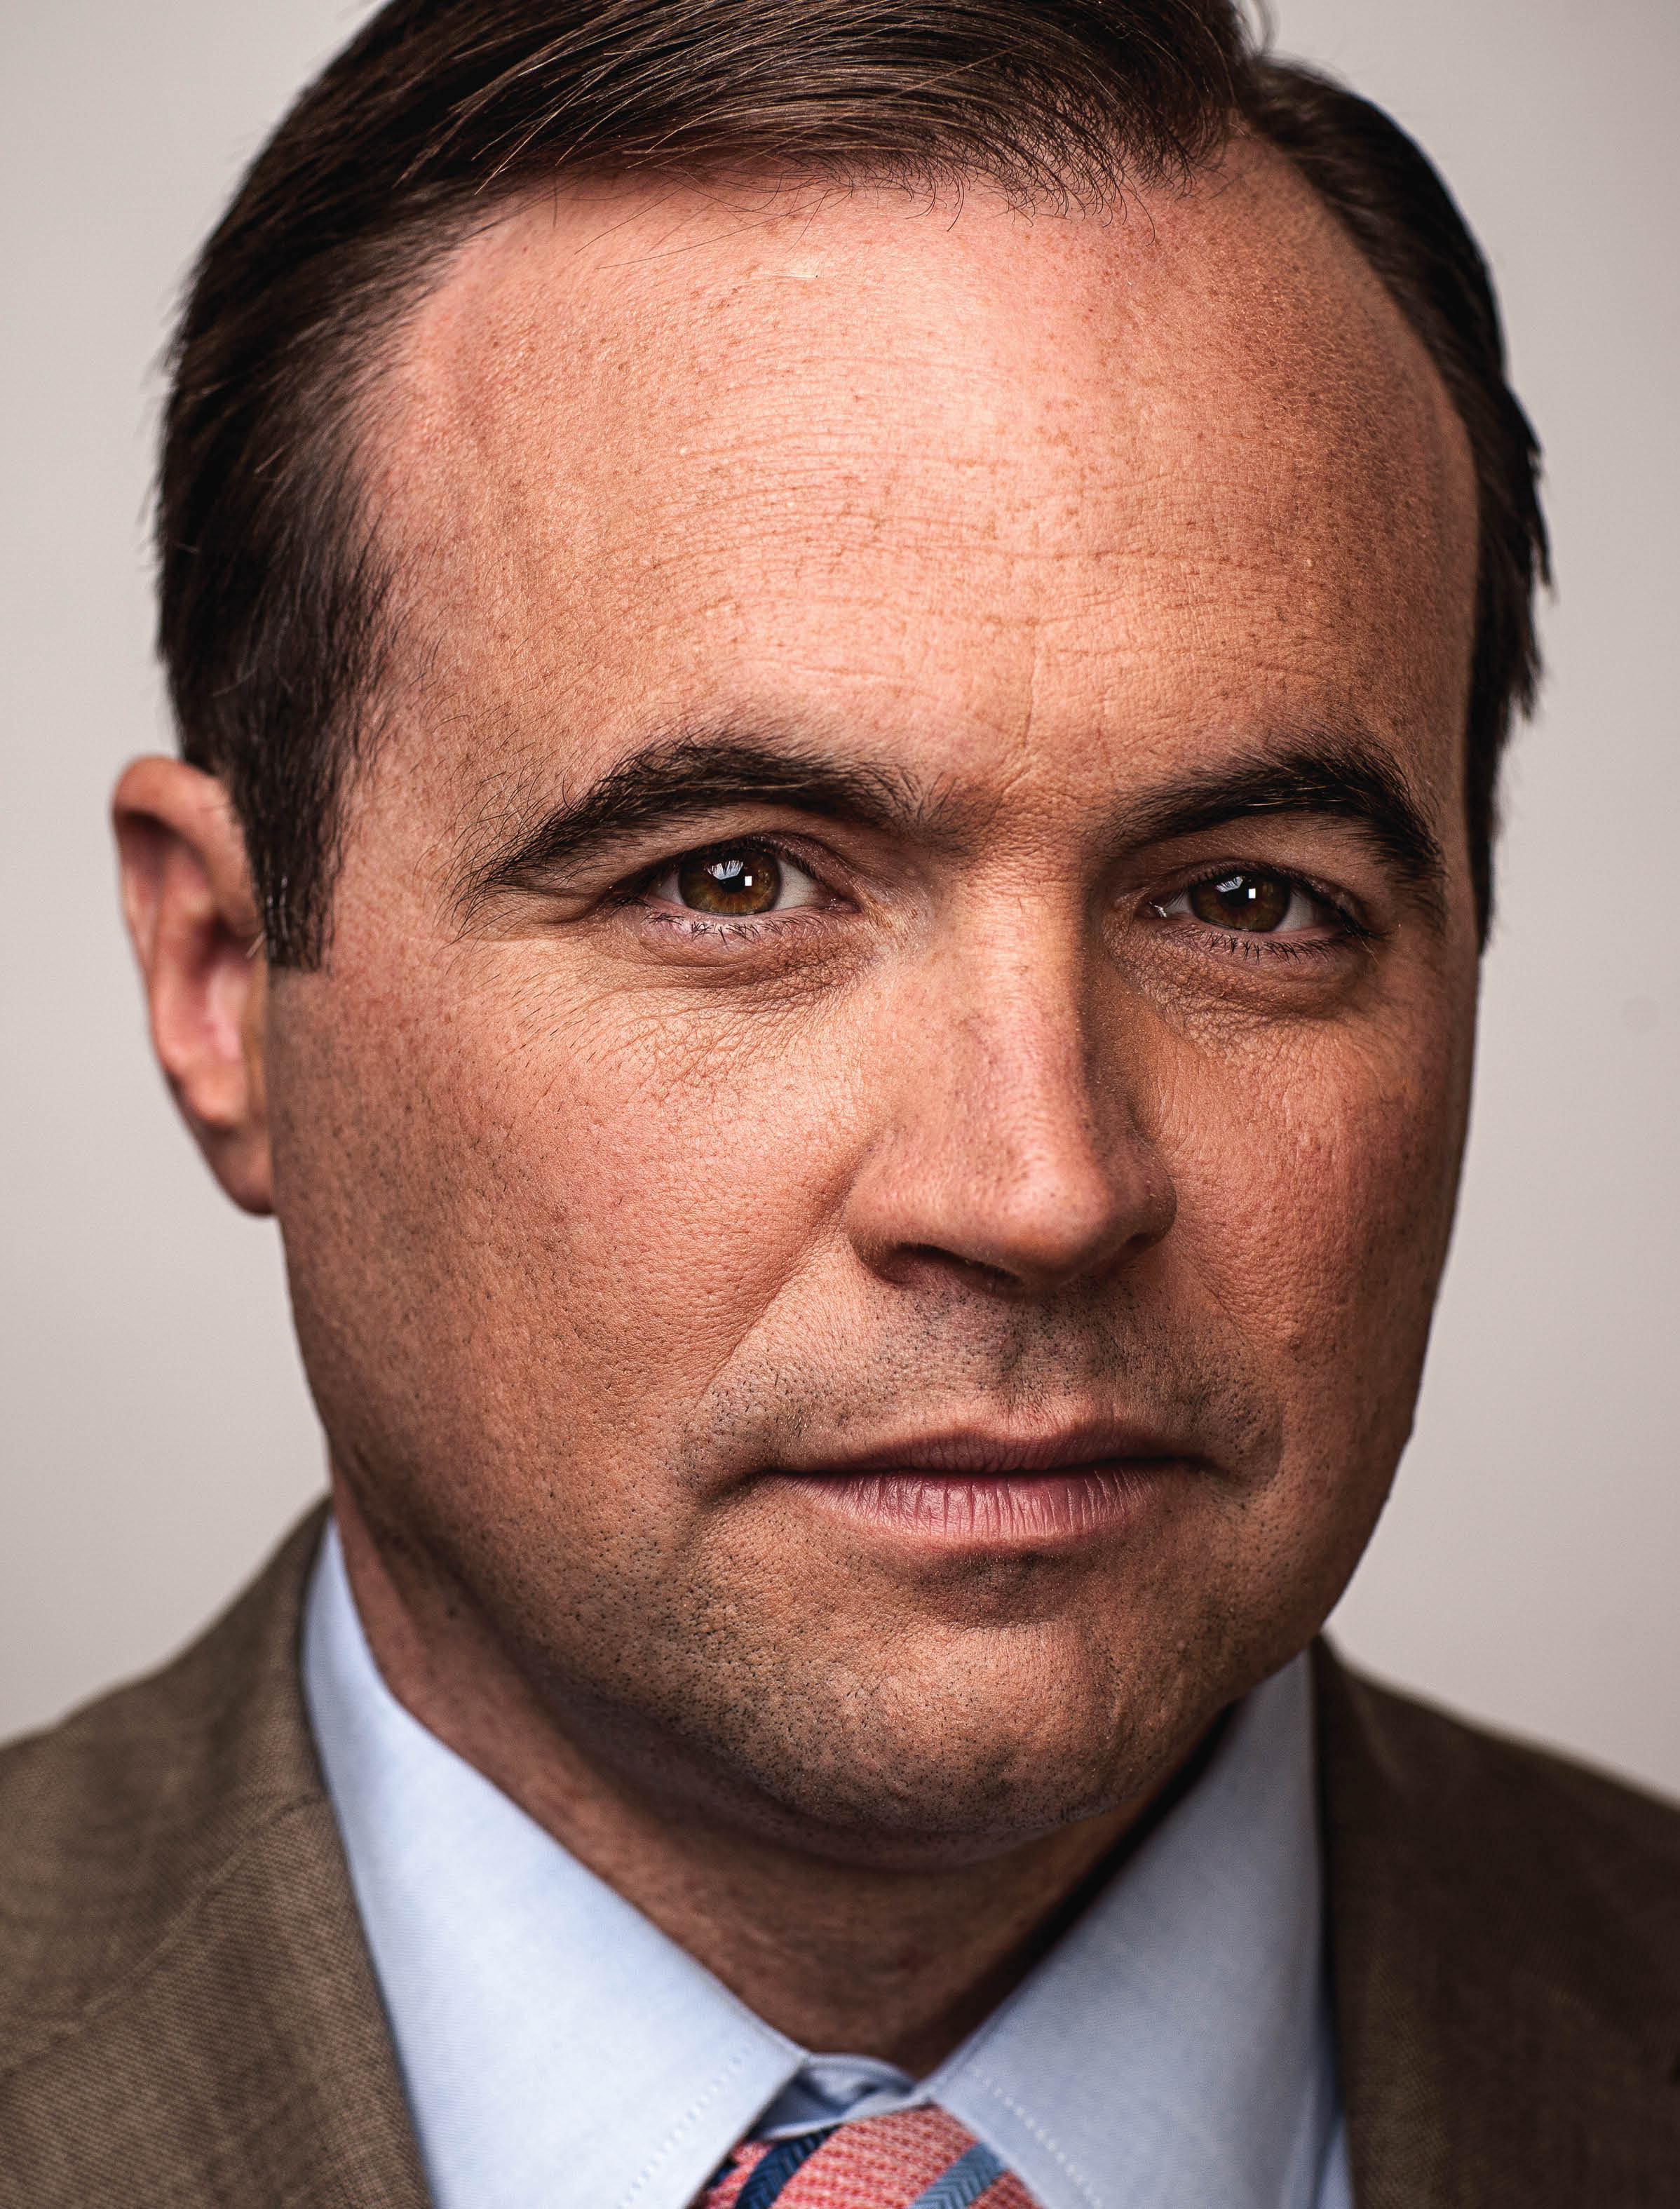 Cincinnati Mayor John Cranley